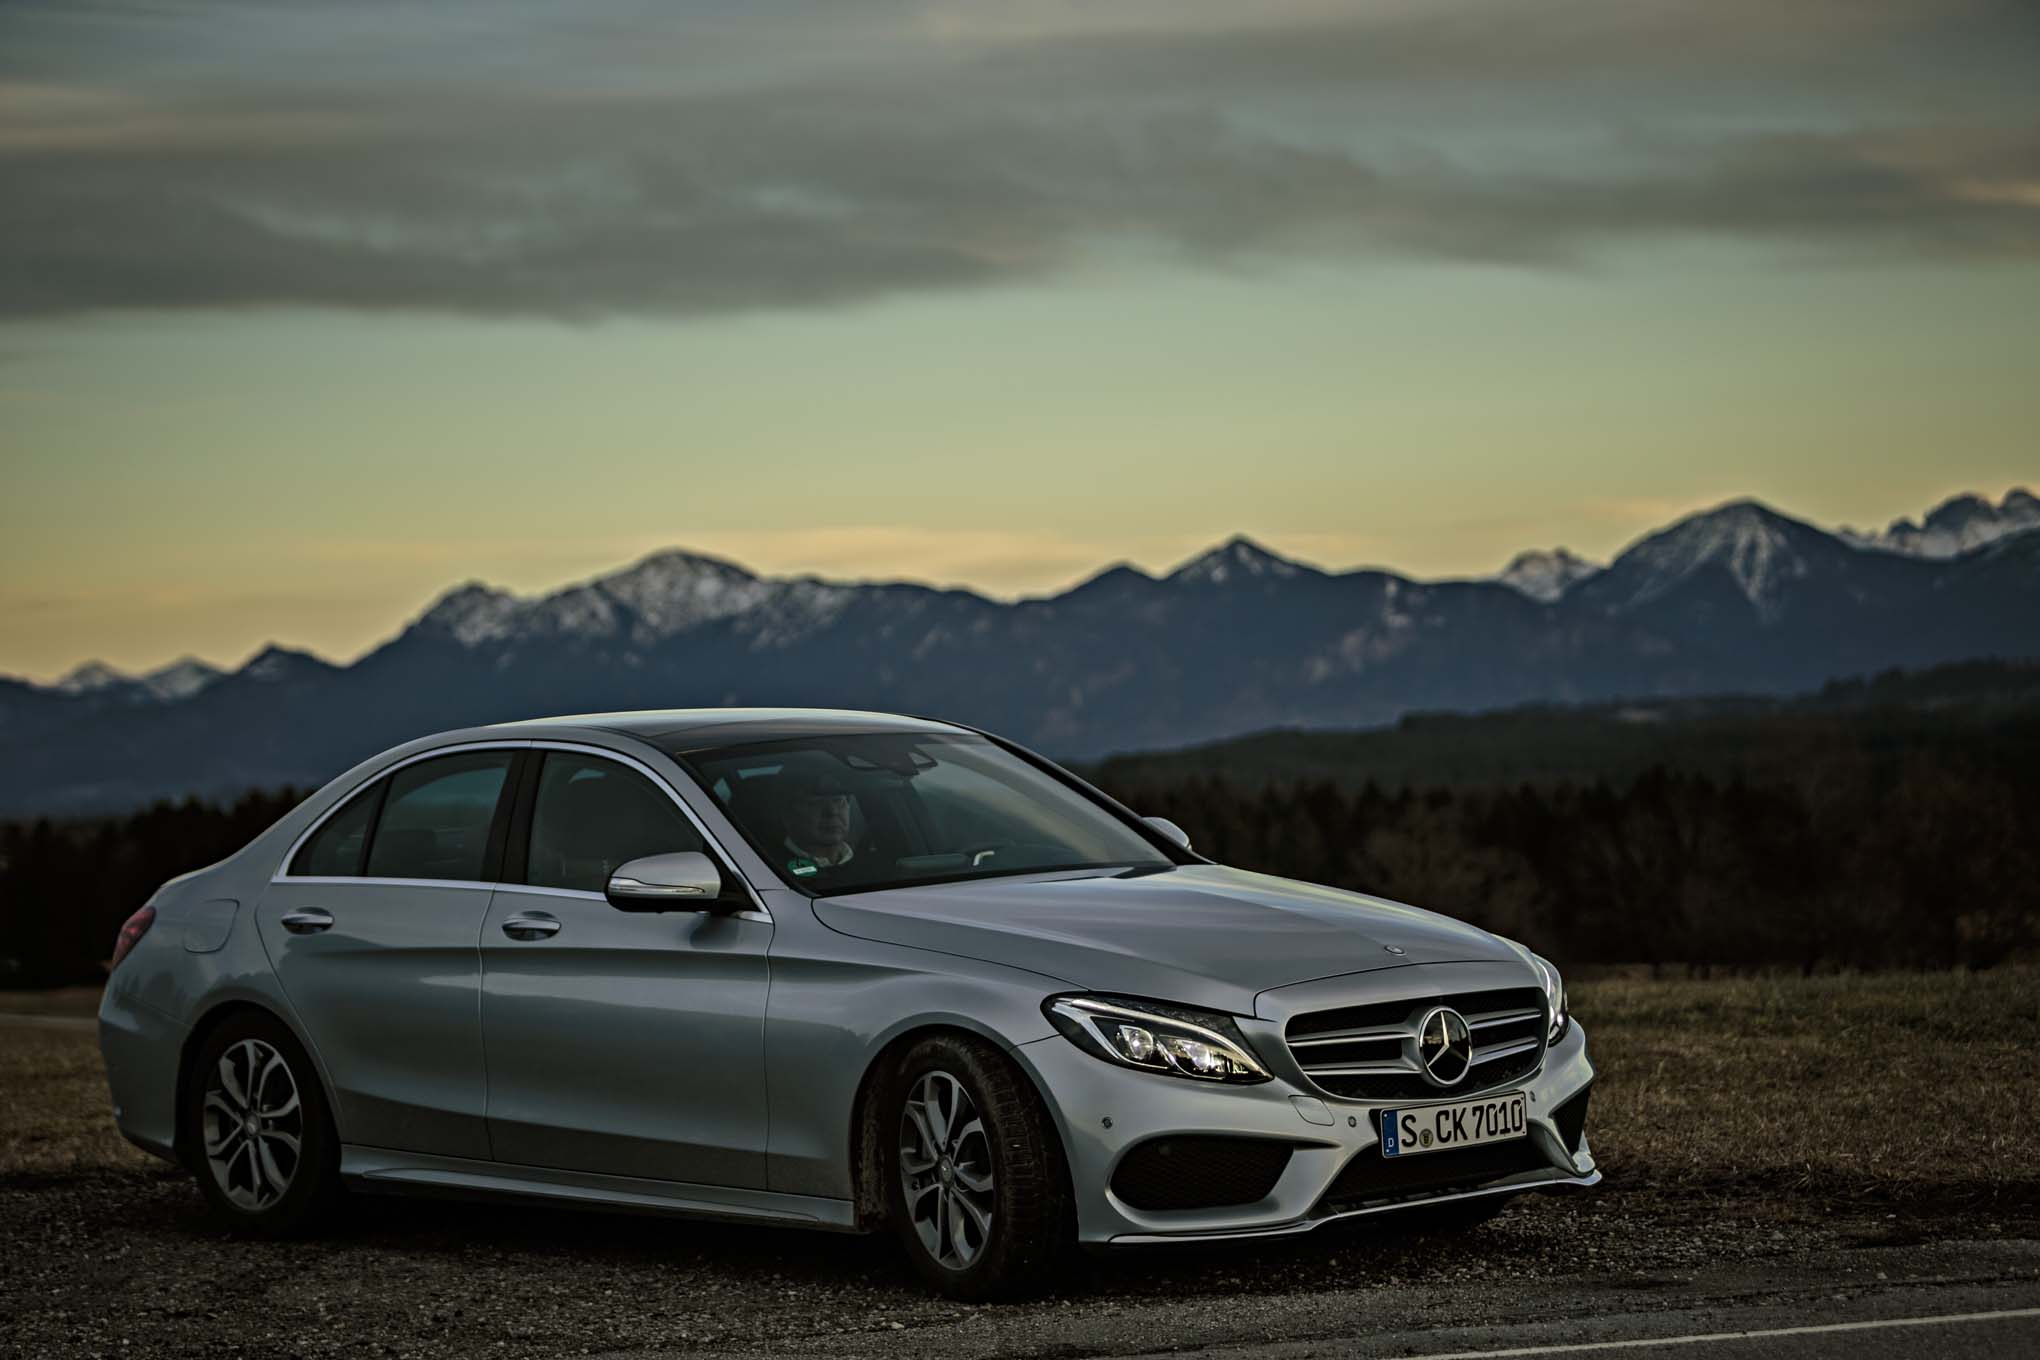 Mercedes benz a class sedan planned for 2018 report for Mercedes benz of tysons corner staff